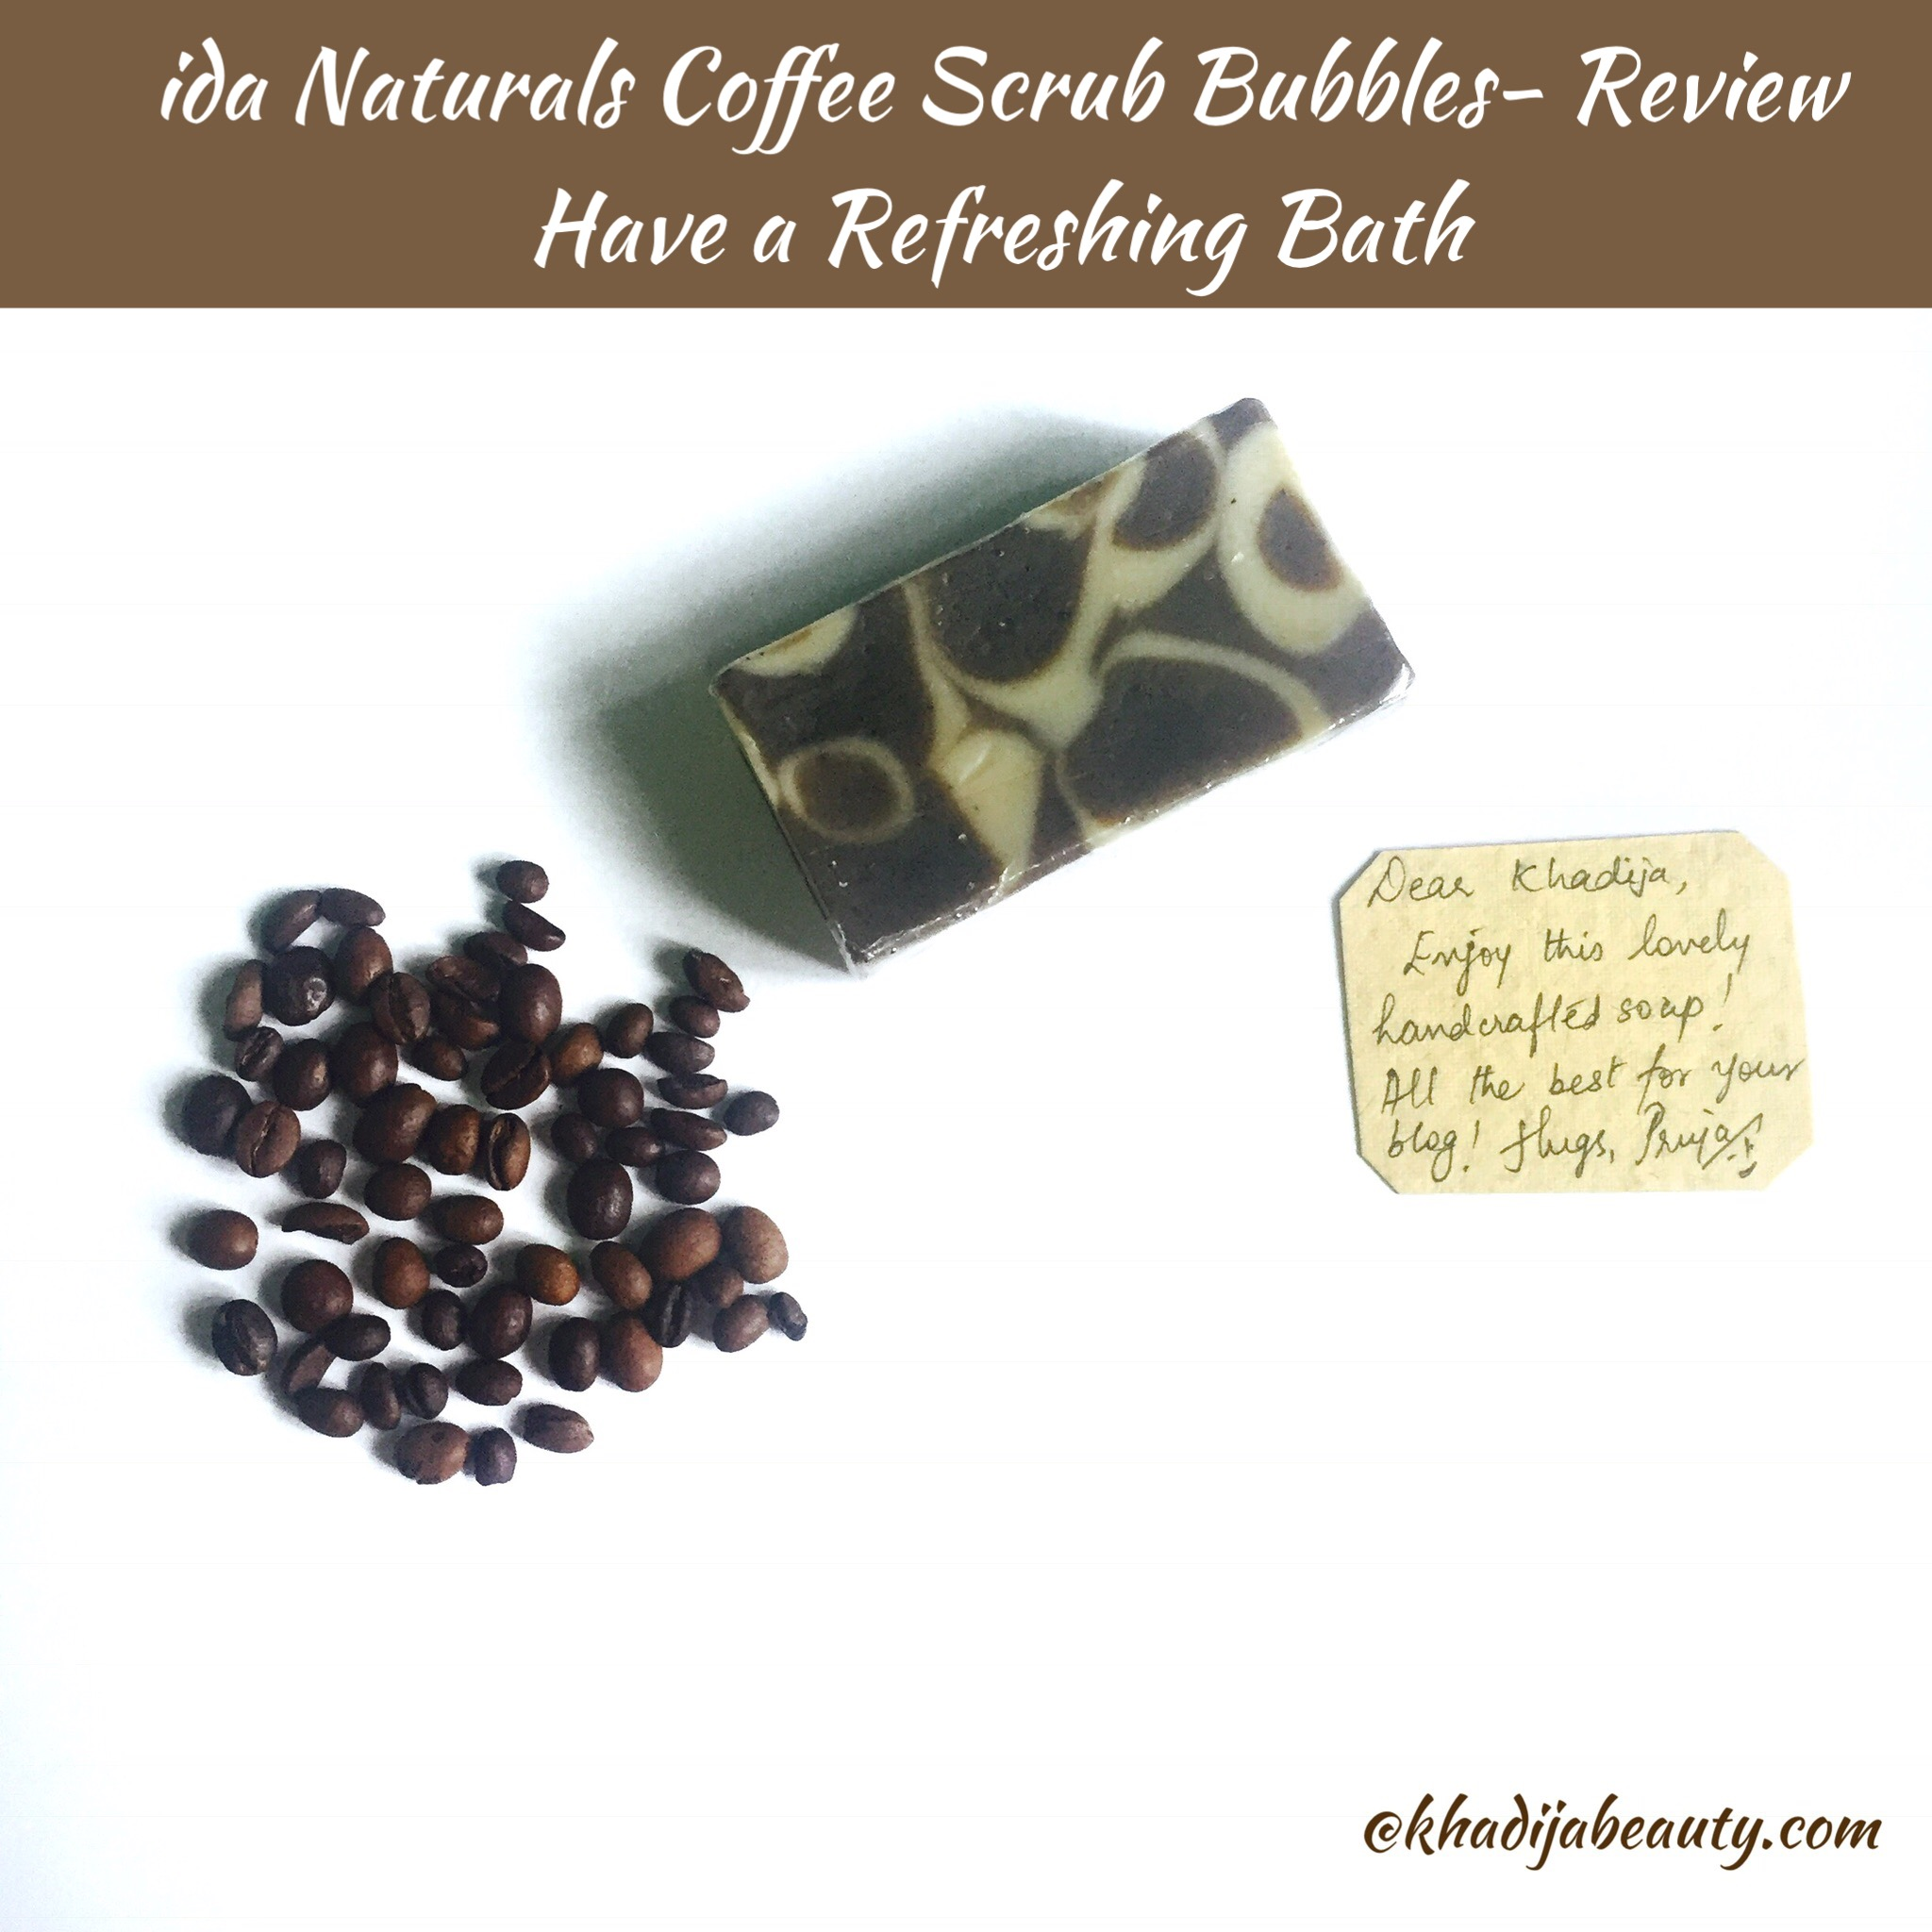 ida Naturals Coffee Scrub Bubbles- Review| Have a Refreshing Bath